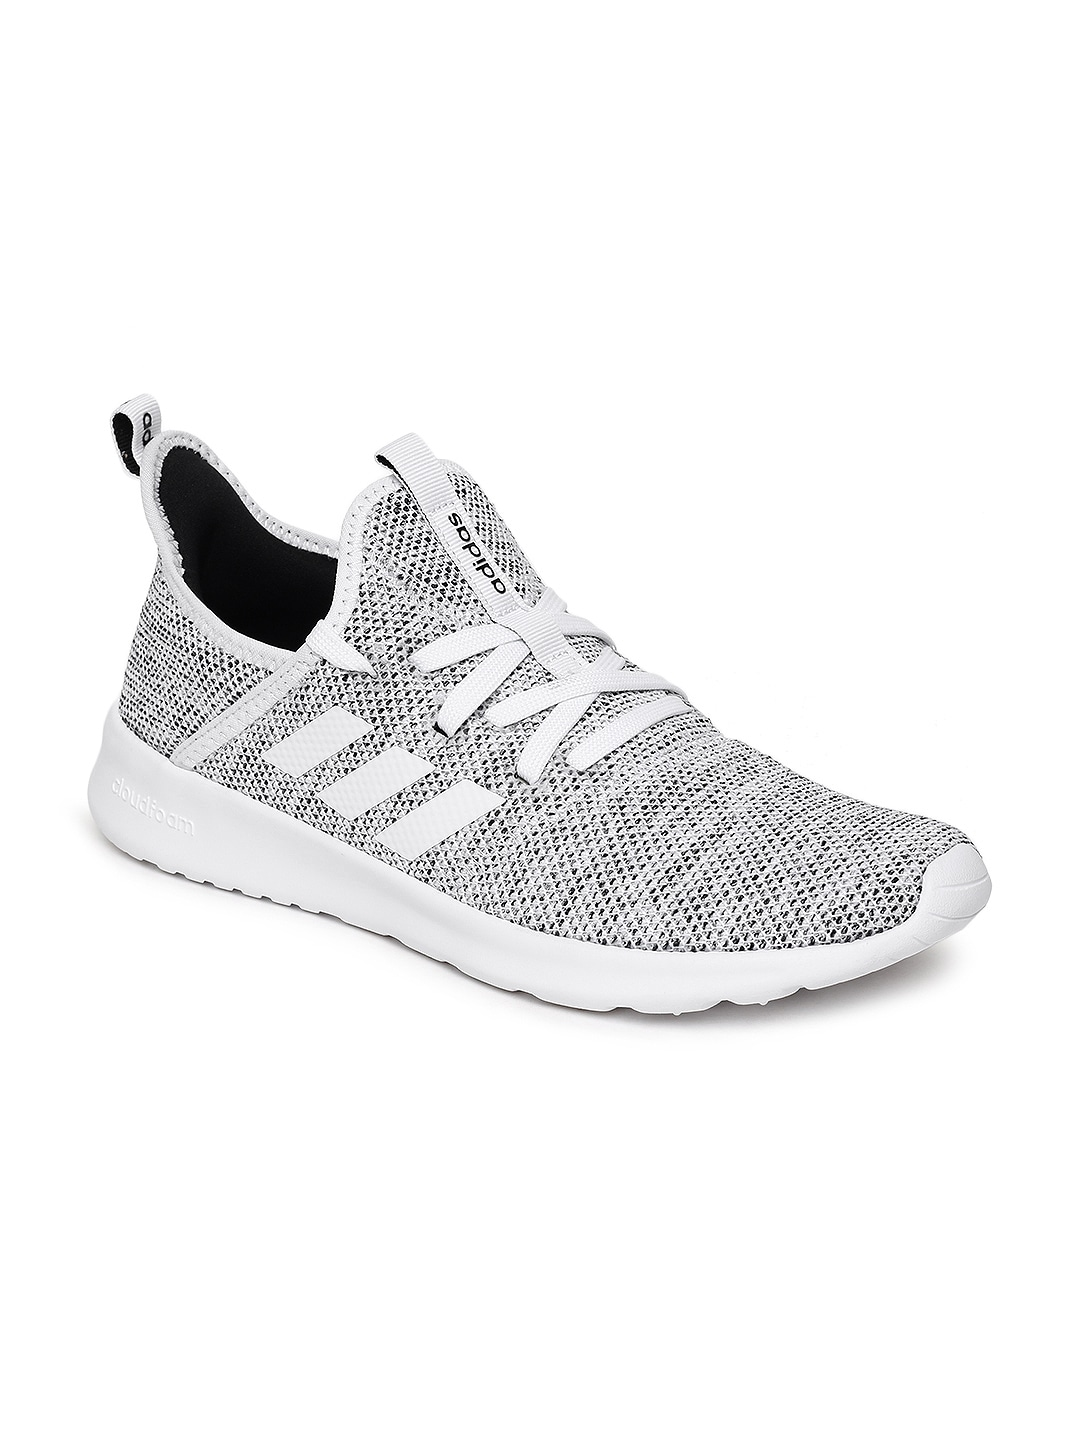 6237e26c767 Sports Shoes for Women - Buy Women Sports Shoes Online